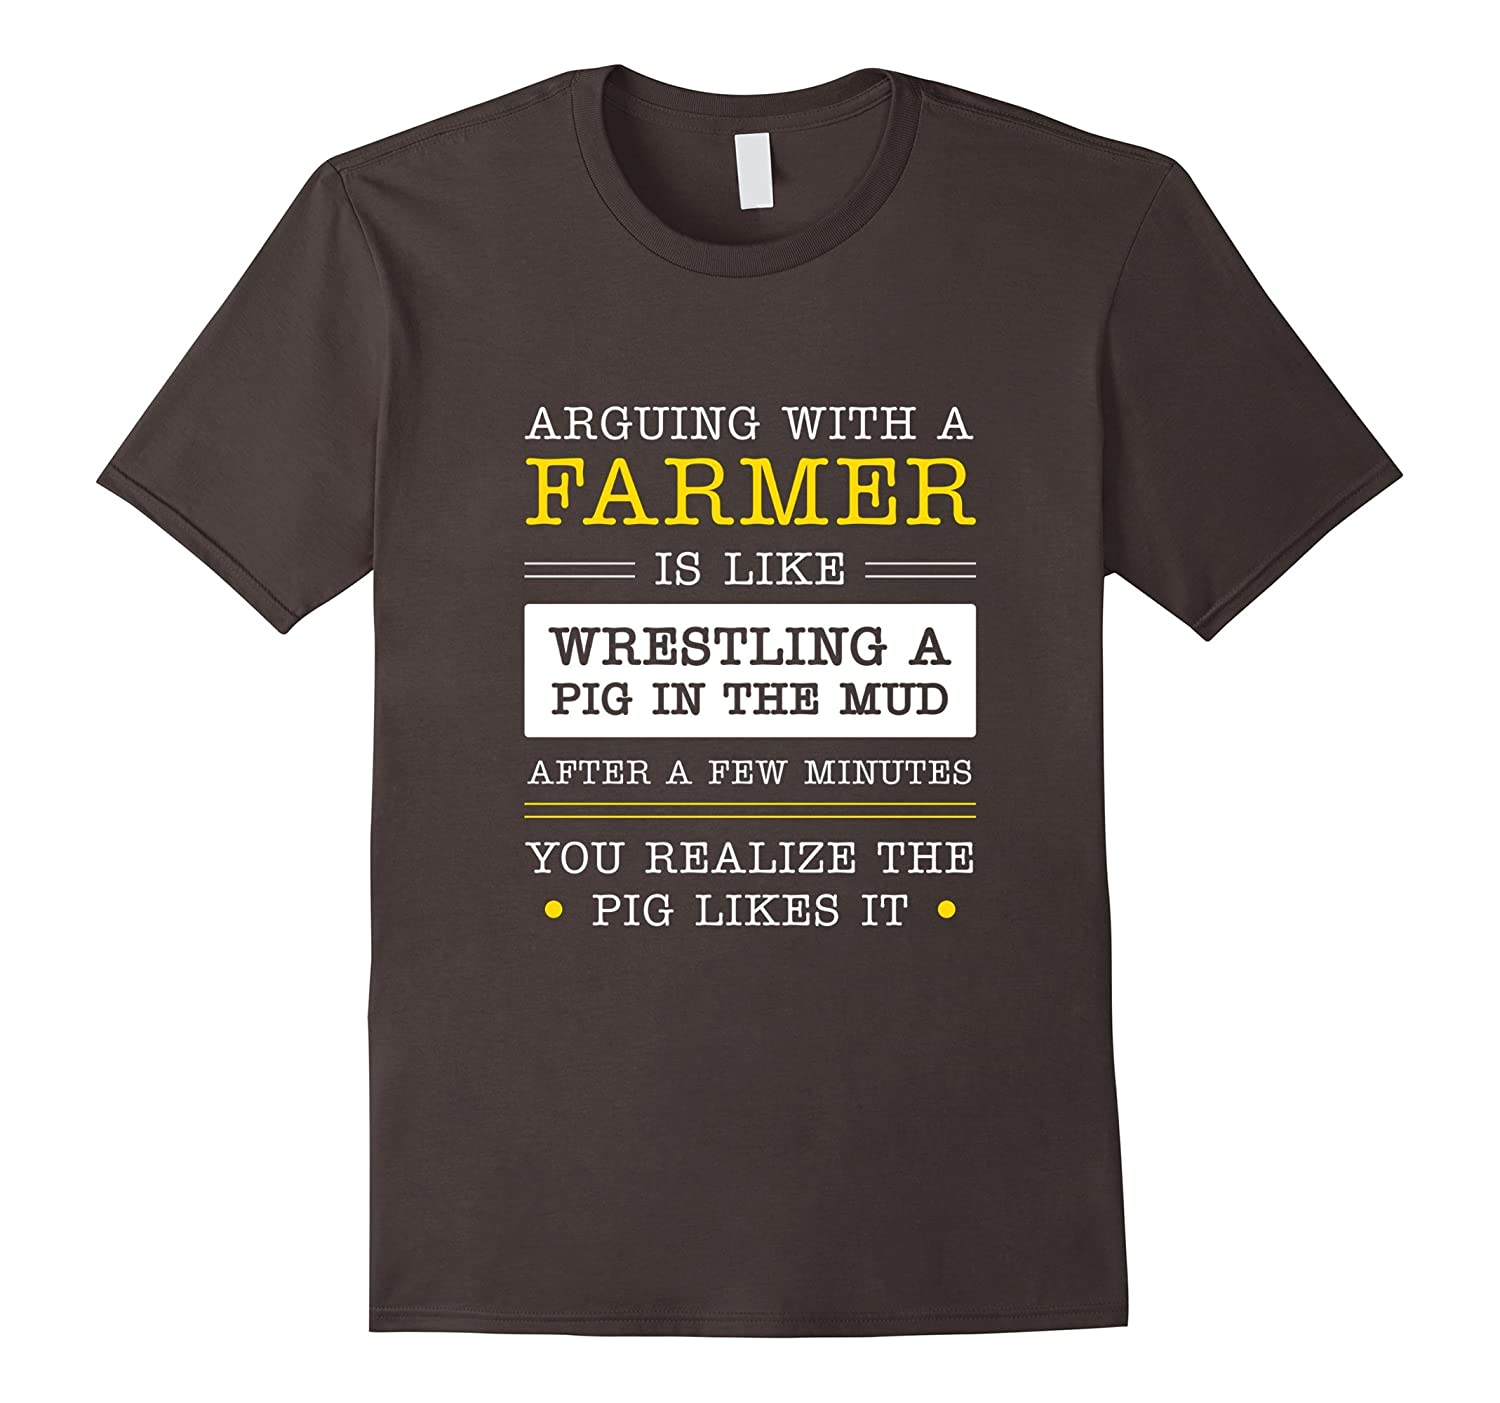 Arguing With A Farmer Like Wrestling A Pig Shirt, Funny Gift-TH